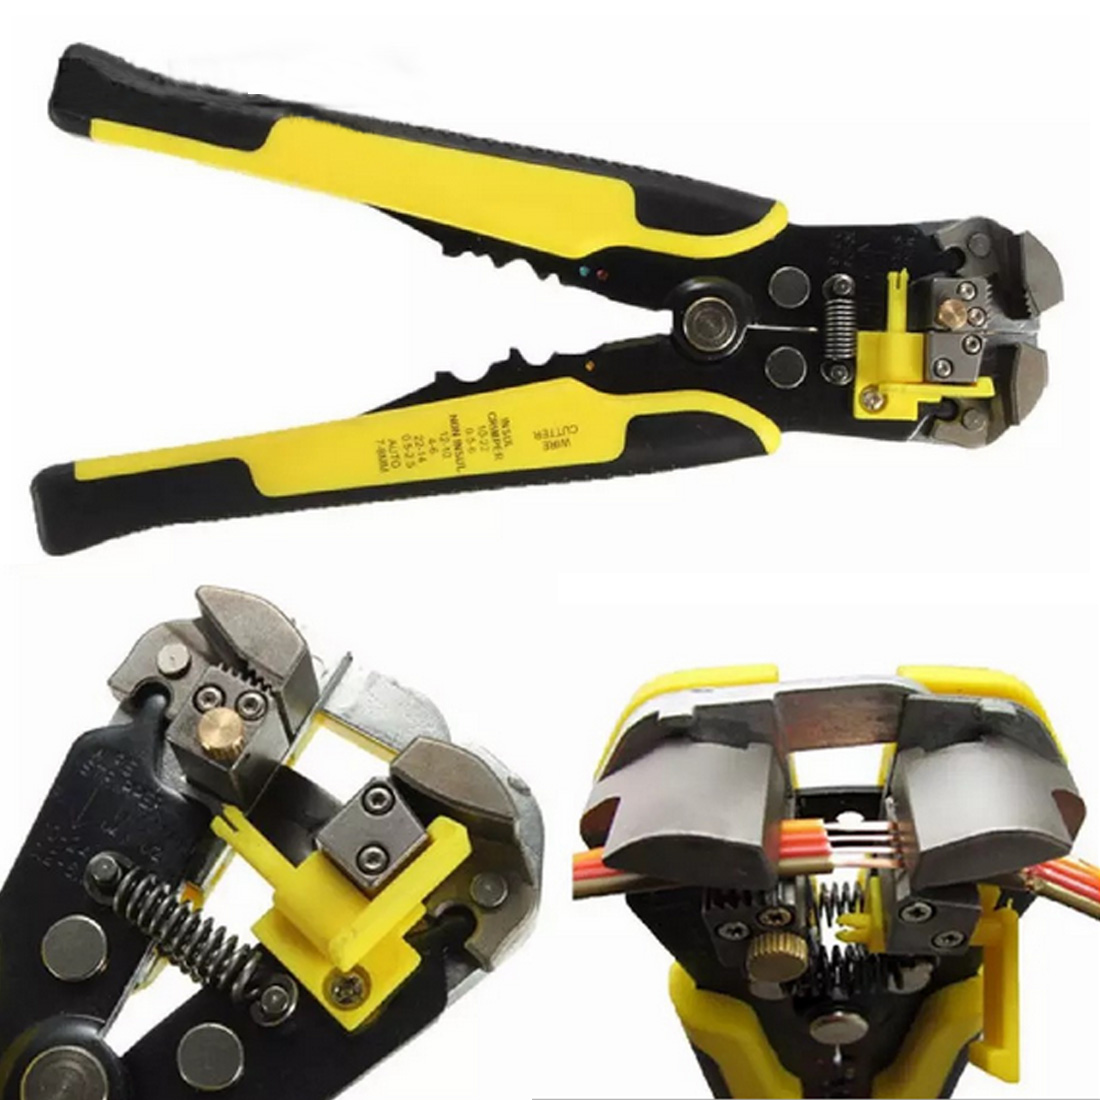 High HS-D1 Multi Functional Cable Wire Stripping 0.2-6.0mm Straight Cutting Crimping Tools Wire Stripper Yellow And Black